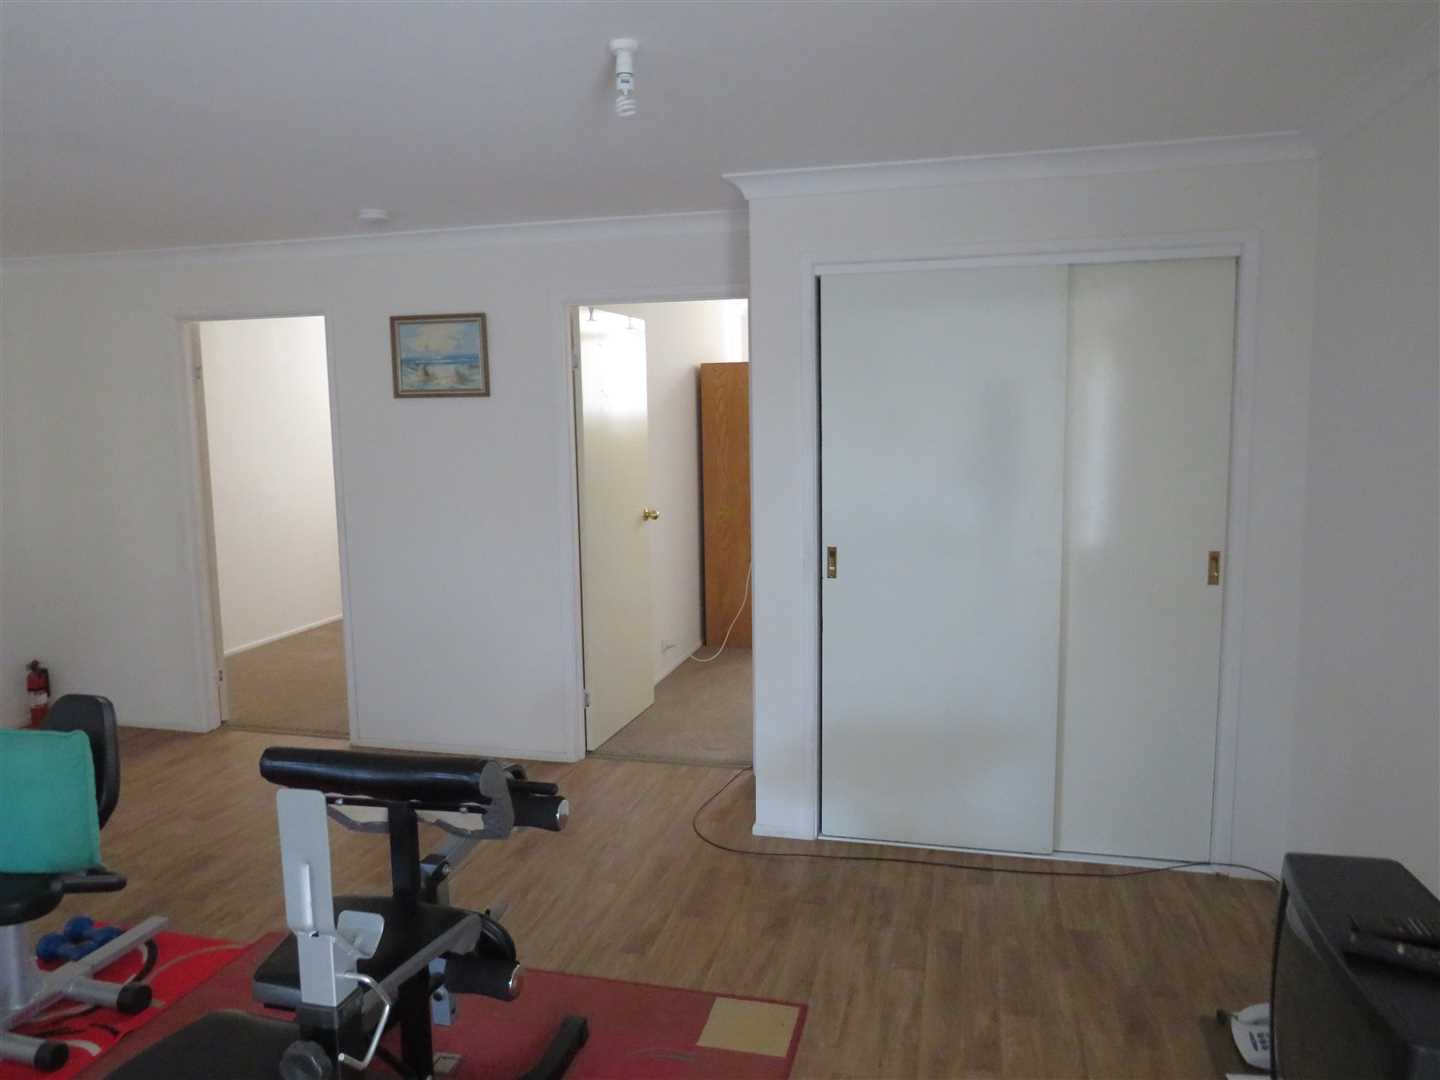 linen cupboard and 2 rooms in shed unit